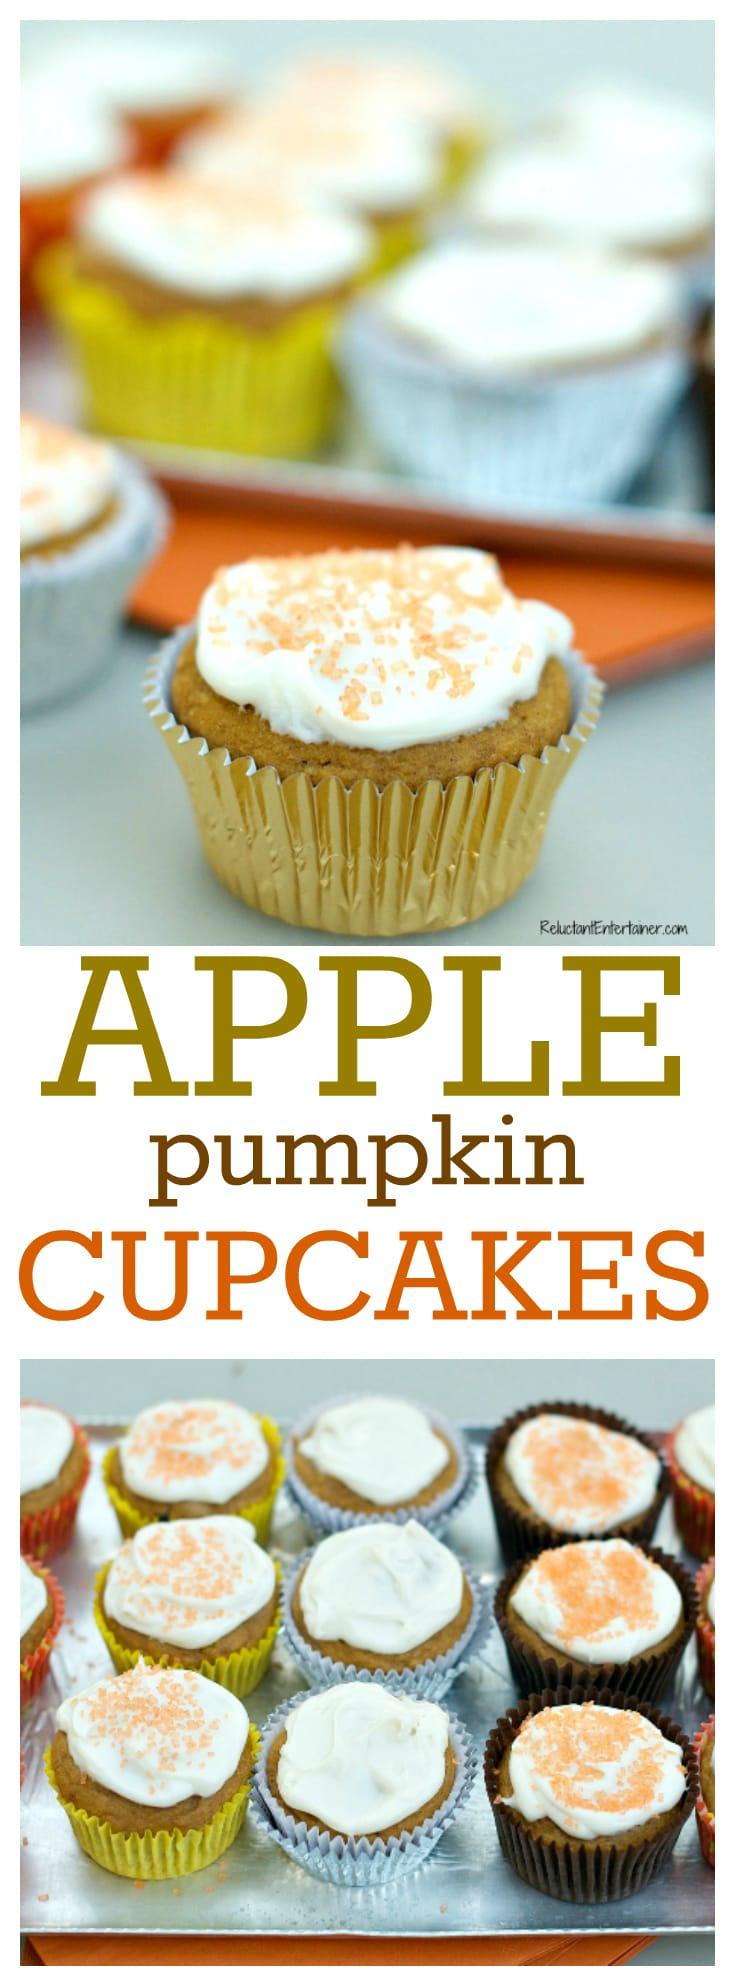 Apple Pumpkin Cupcakes at ReluctantEntertainer.com